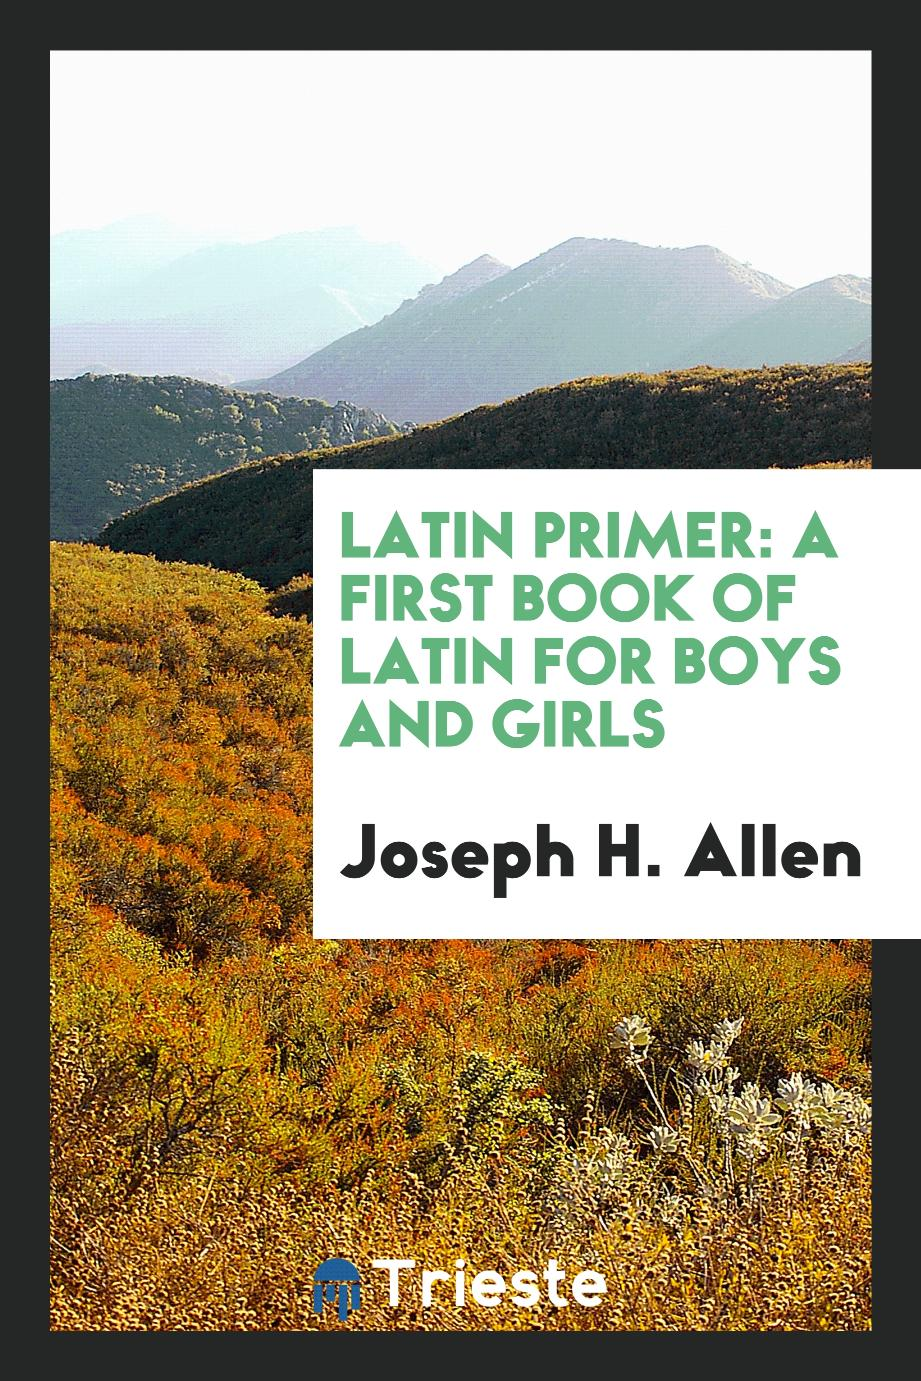 Latin Primer: A First Book of Latin for Boys and Girls